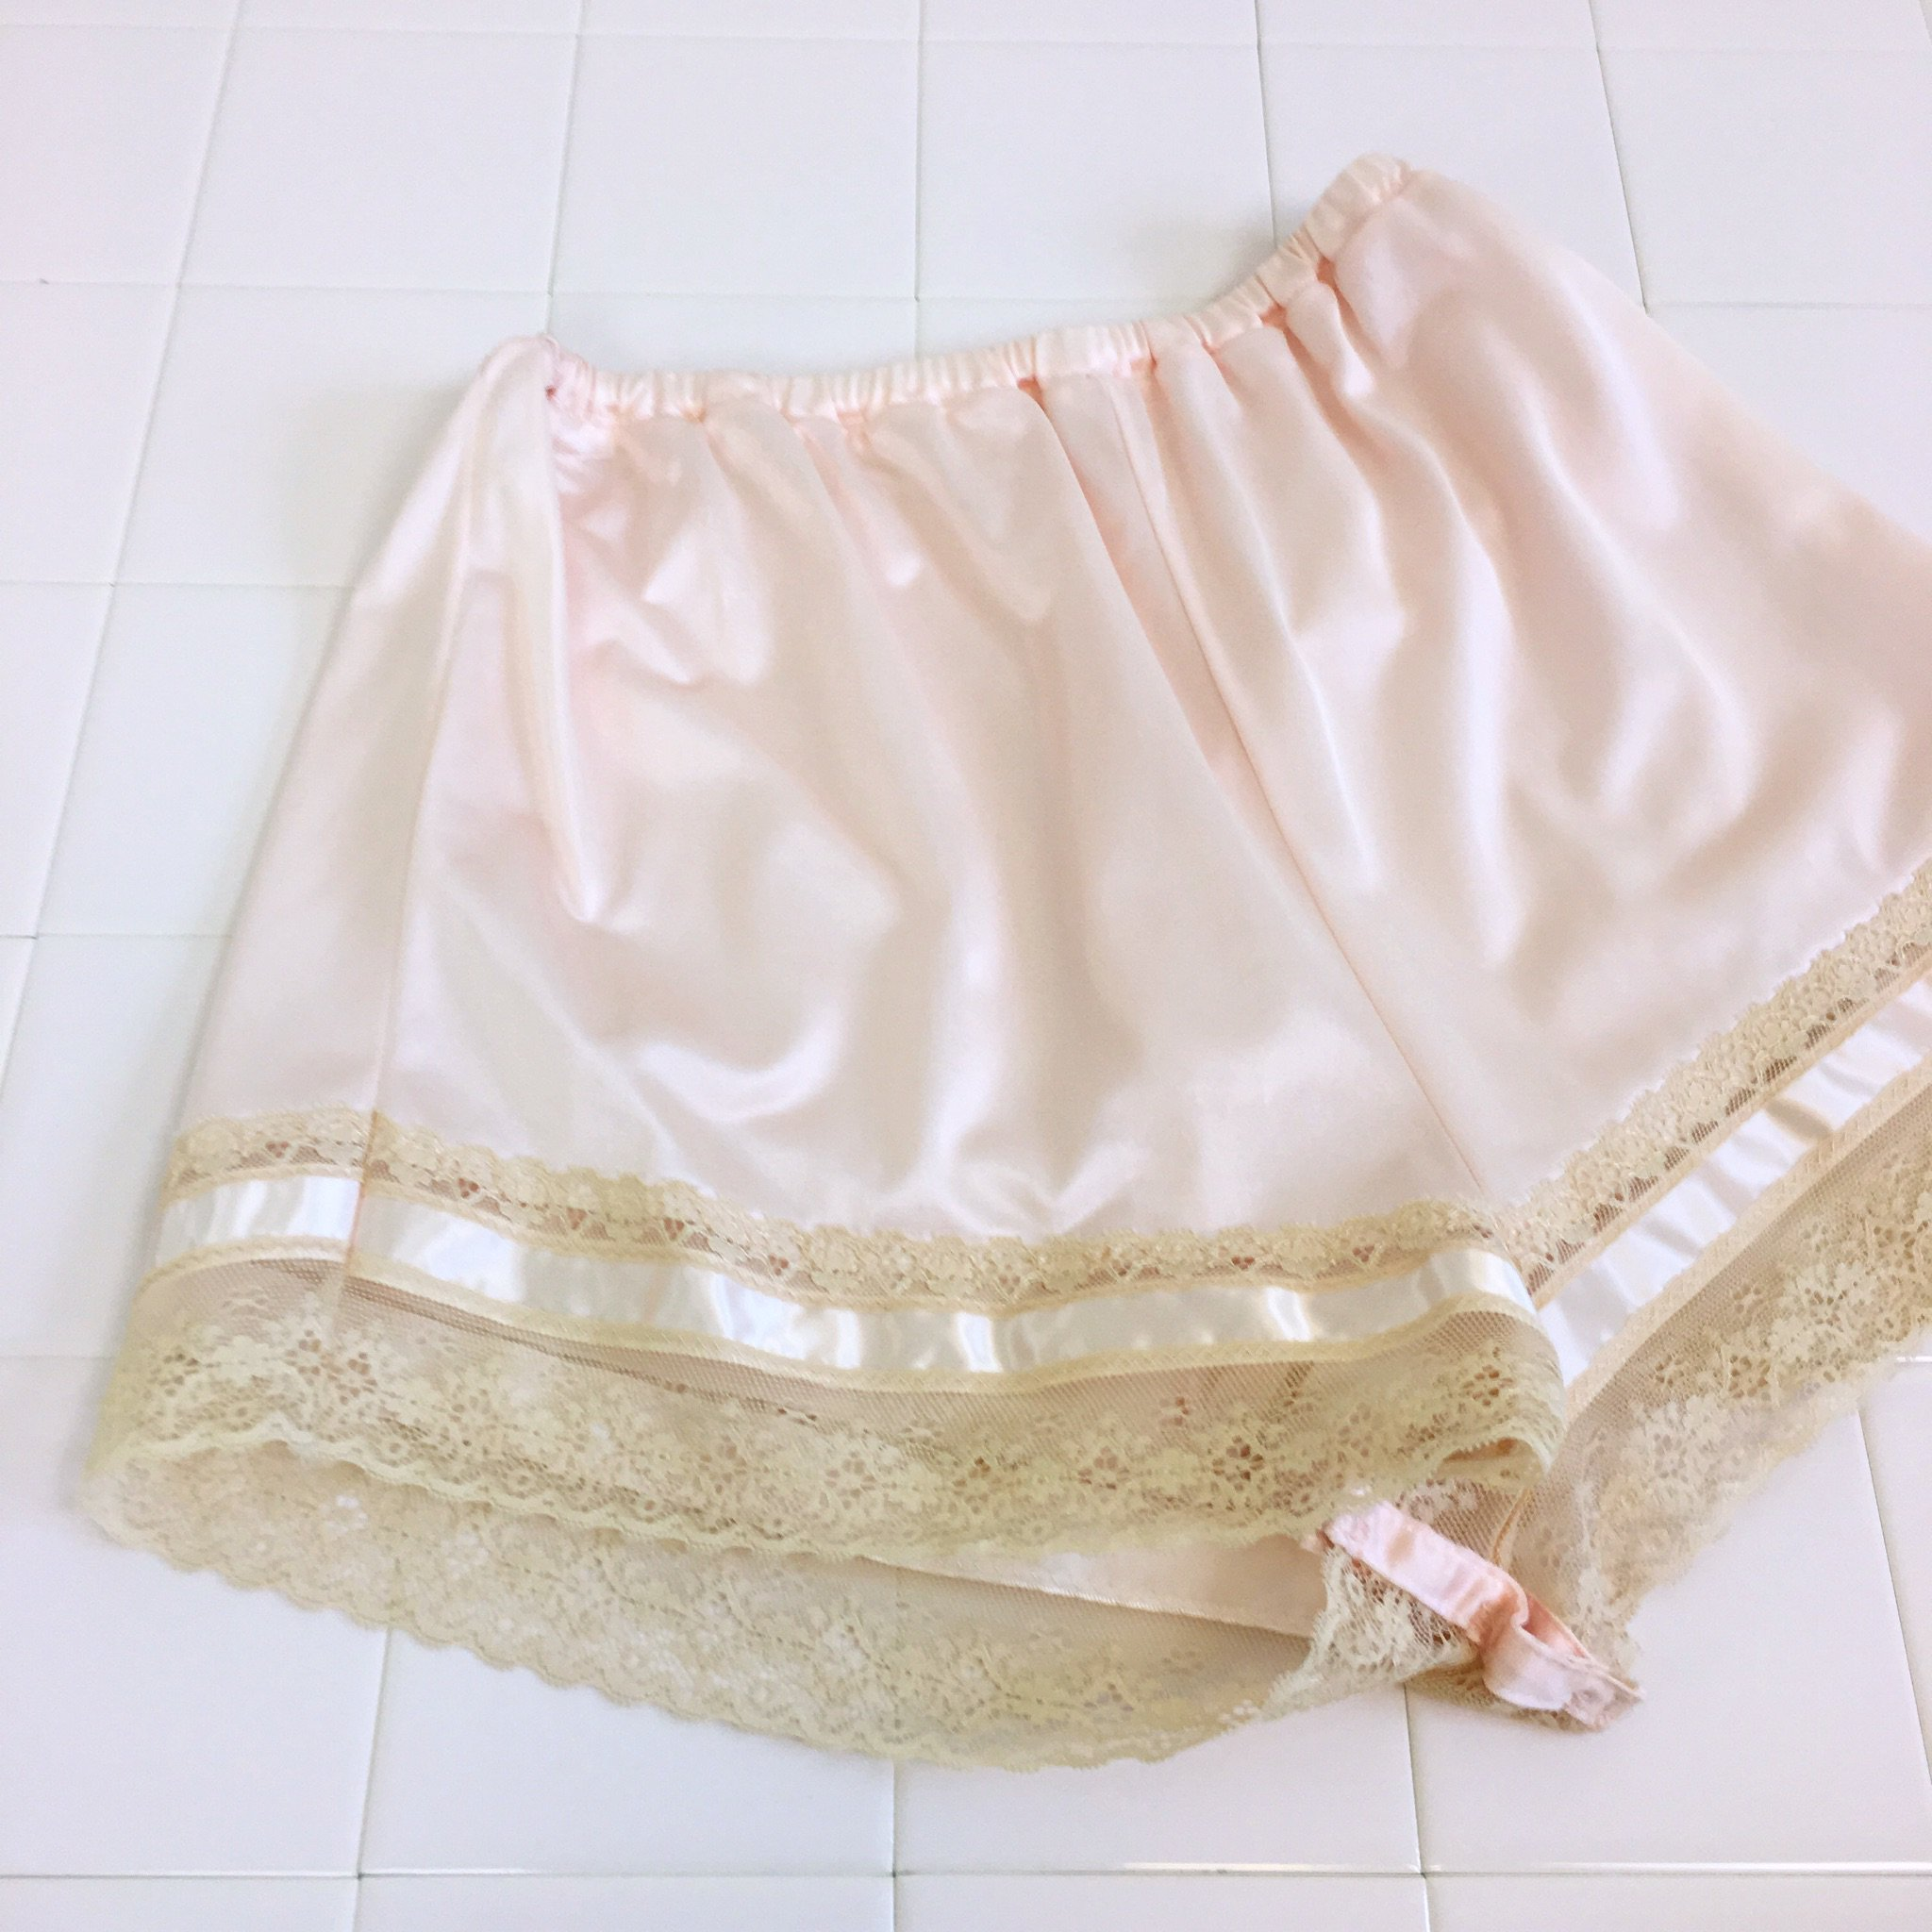 pale pink lingerie short pants